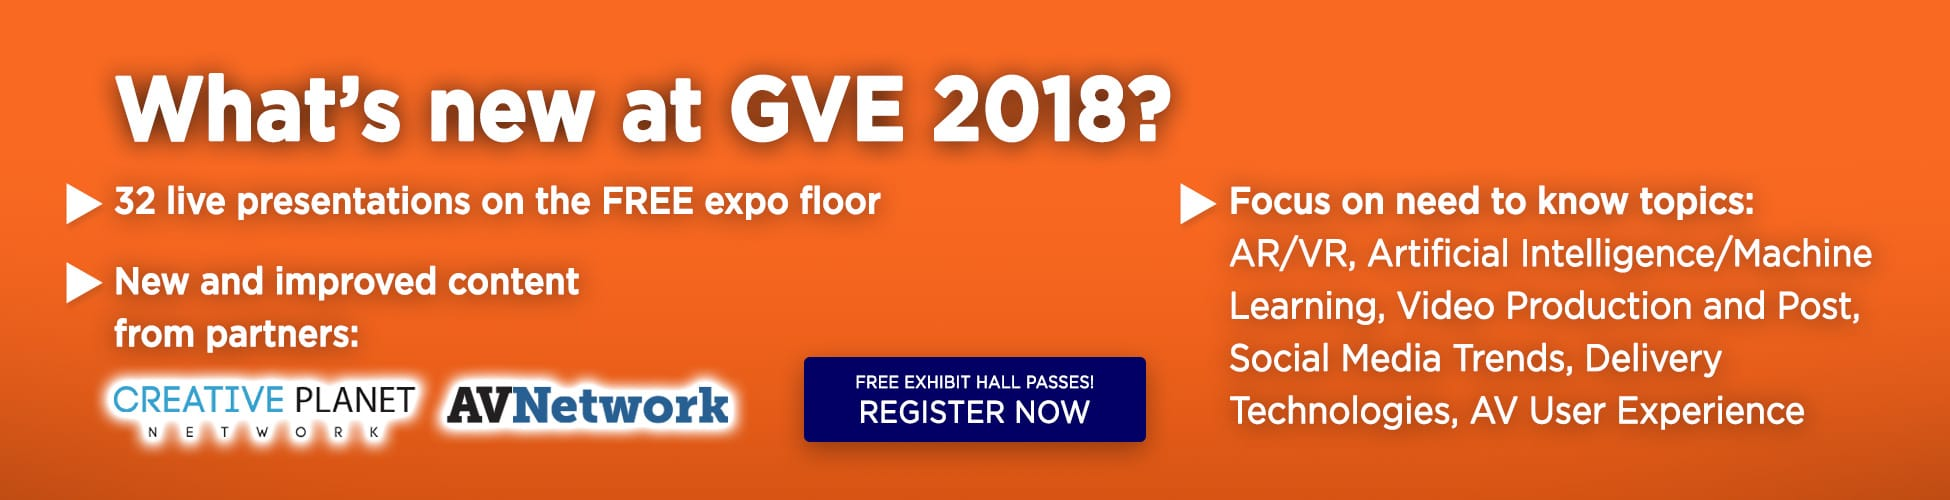 GV Expo 2018, What is new at GVE 2018?